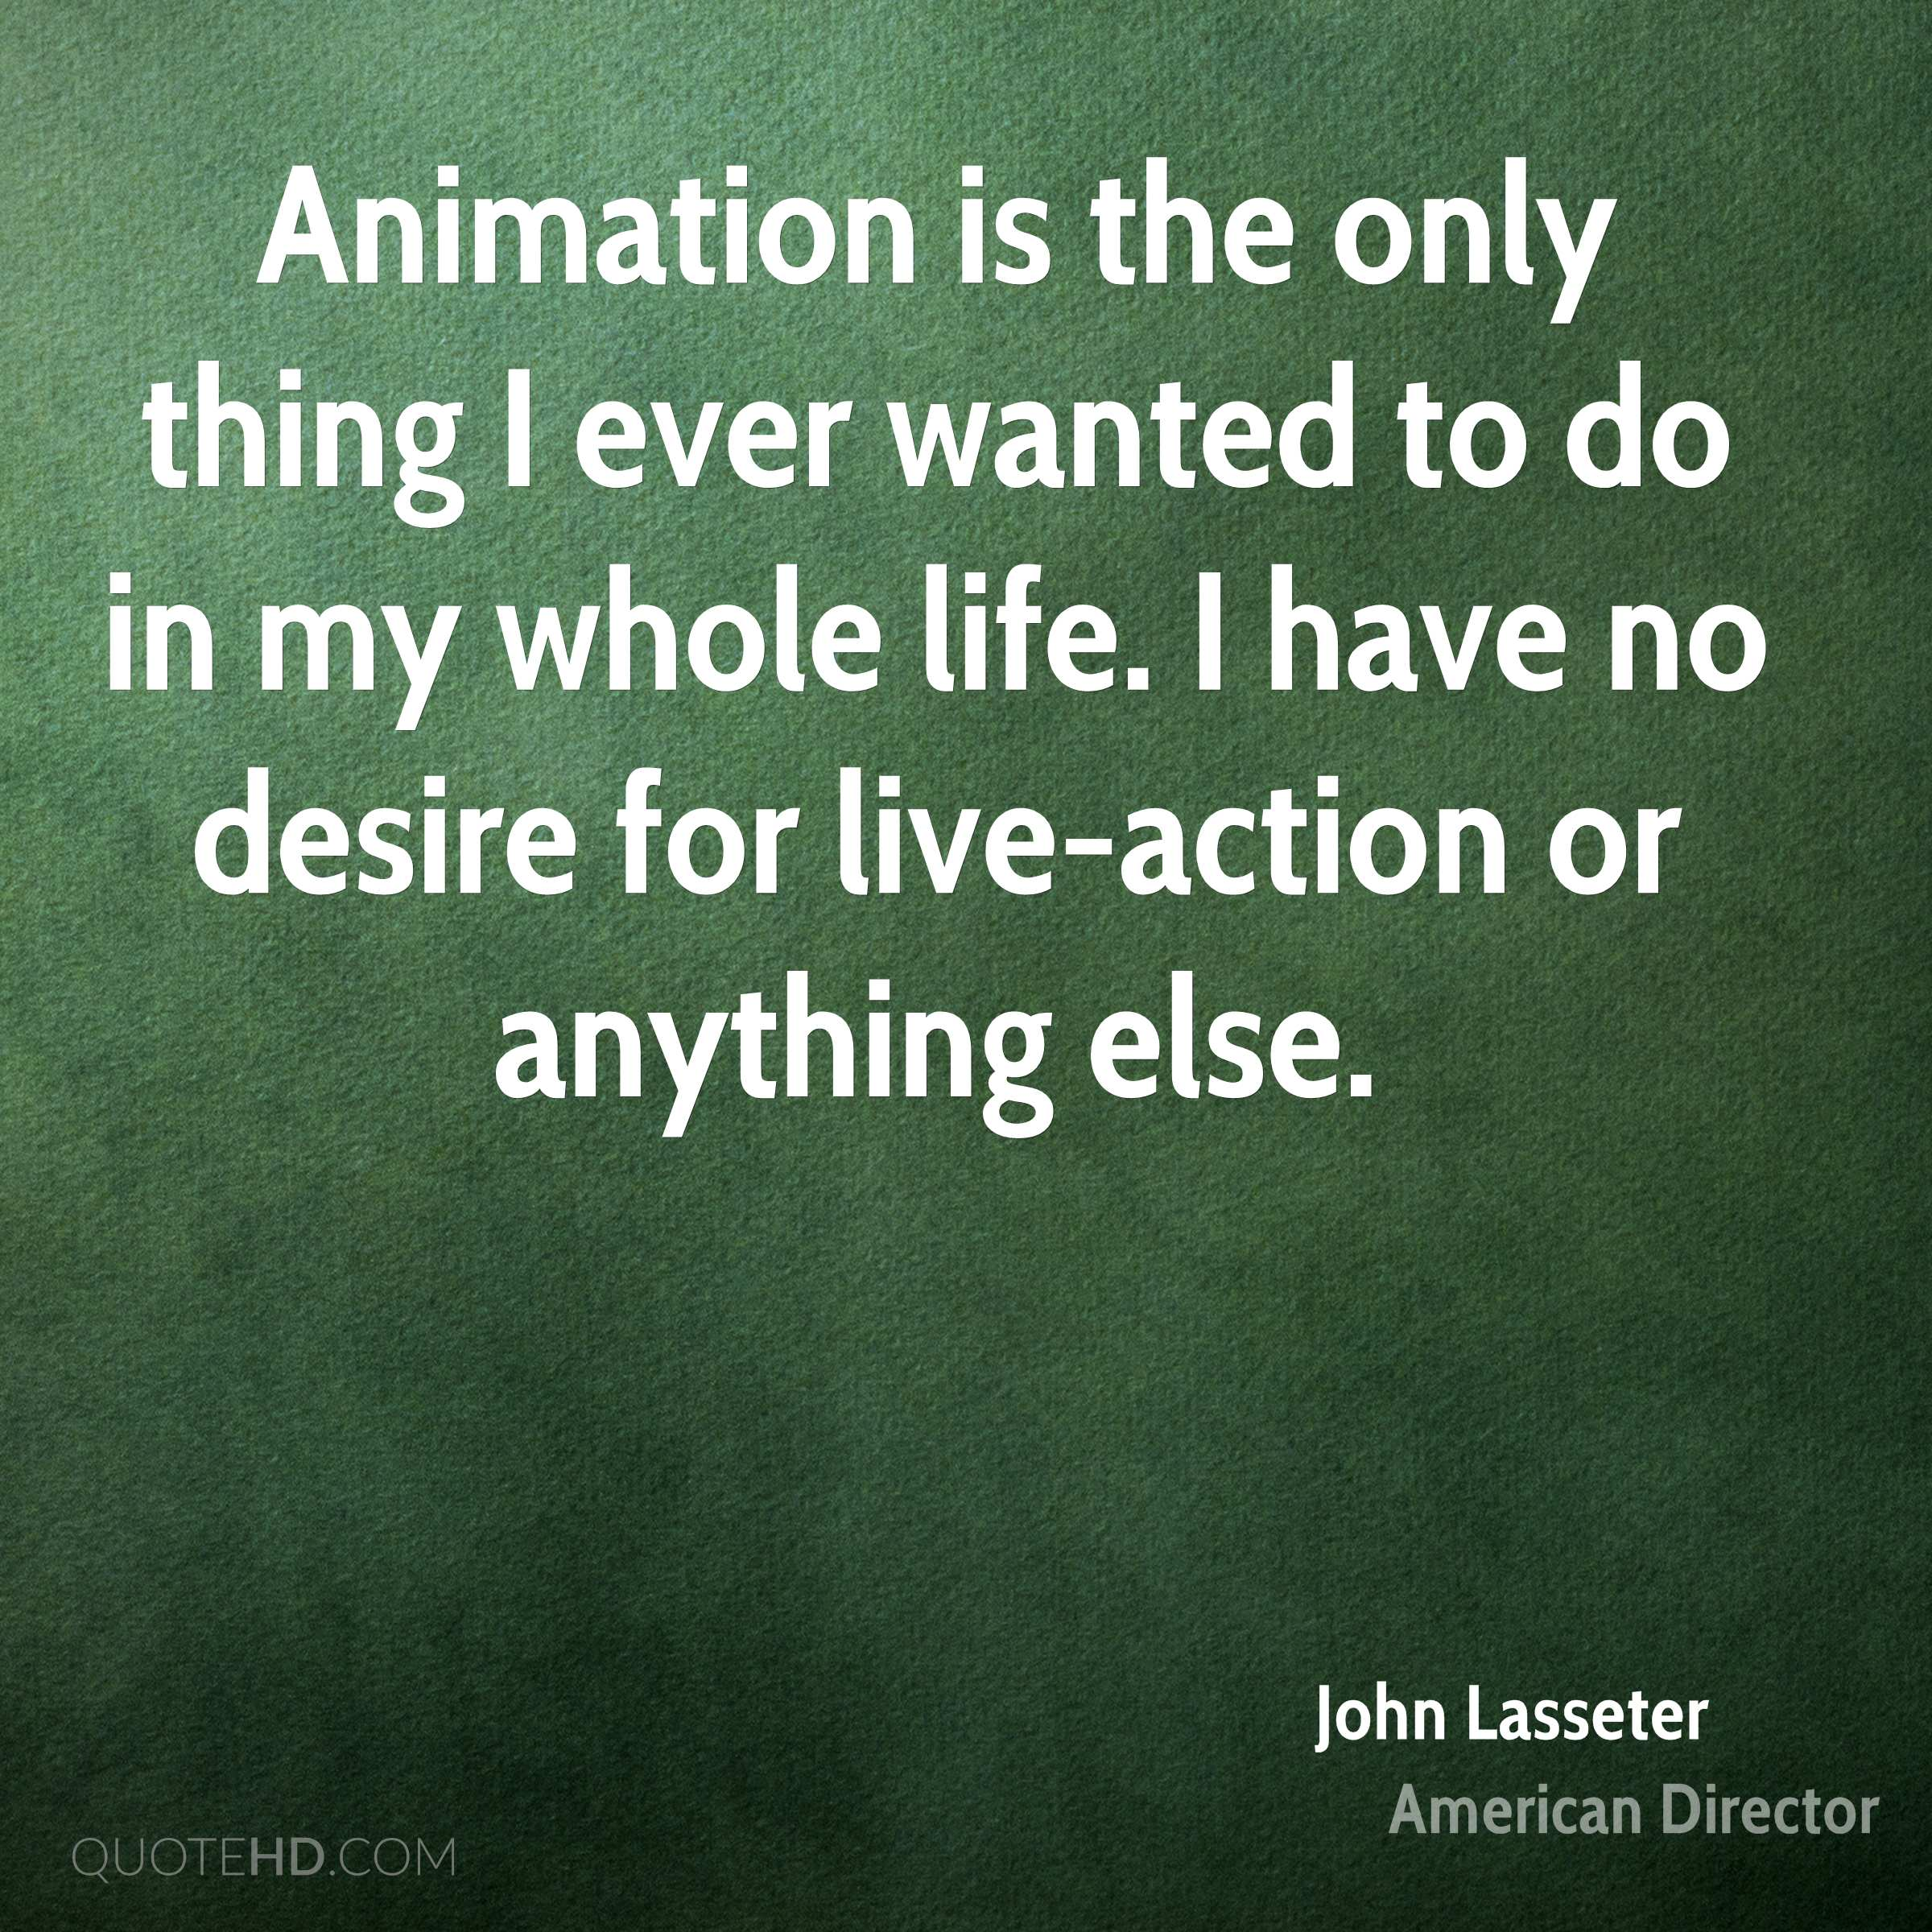 Animation is the only thing I ever wanted to do in my whole life. I have no desire for live-action or anything else.